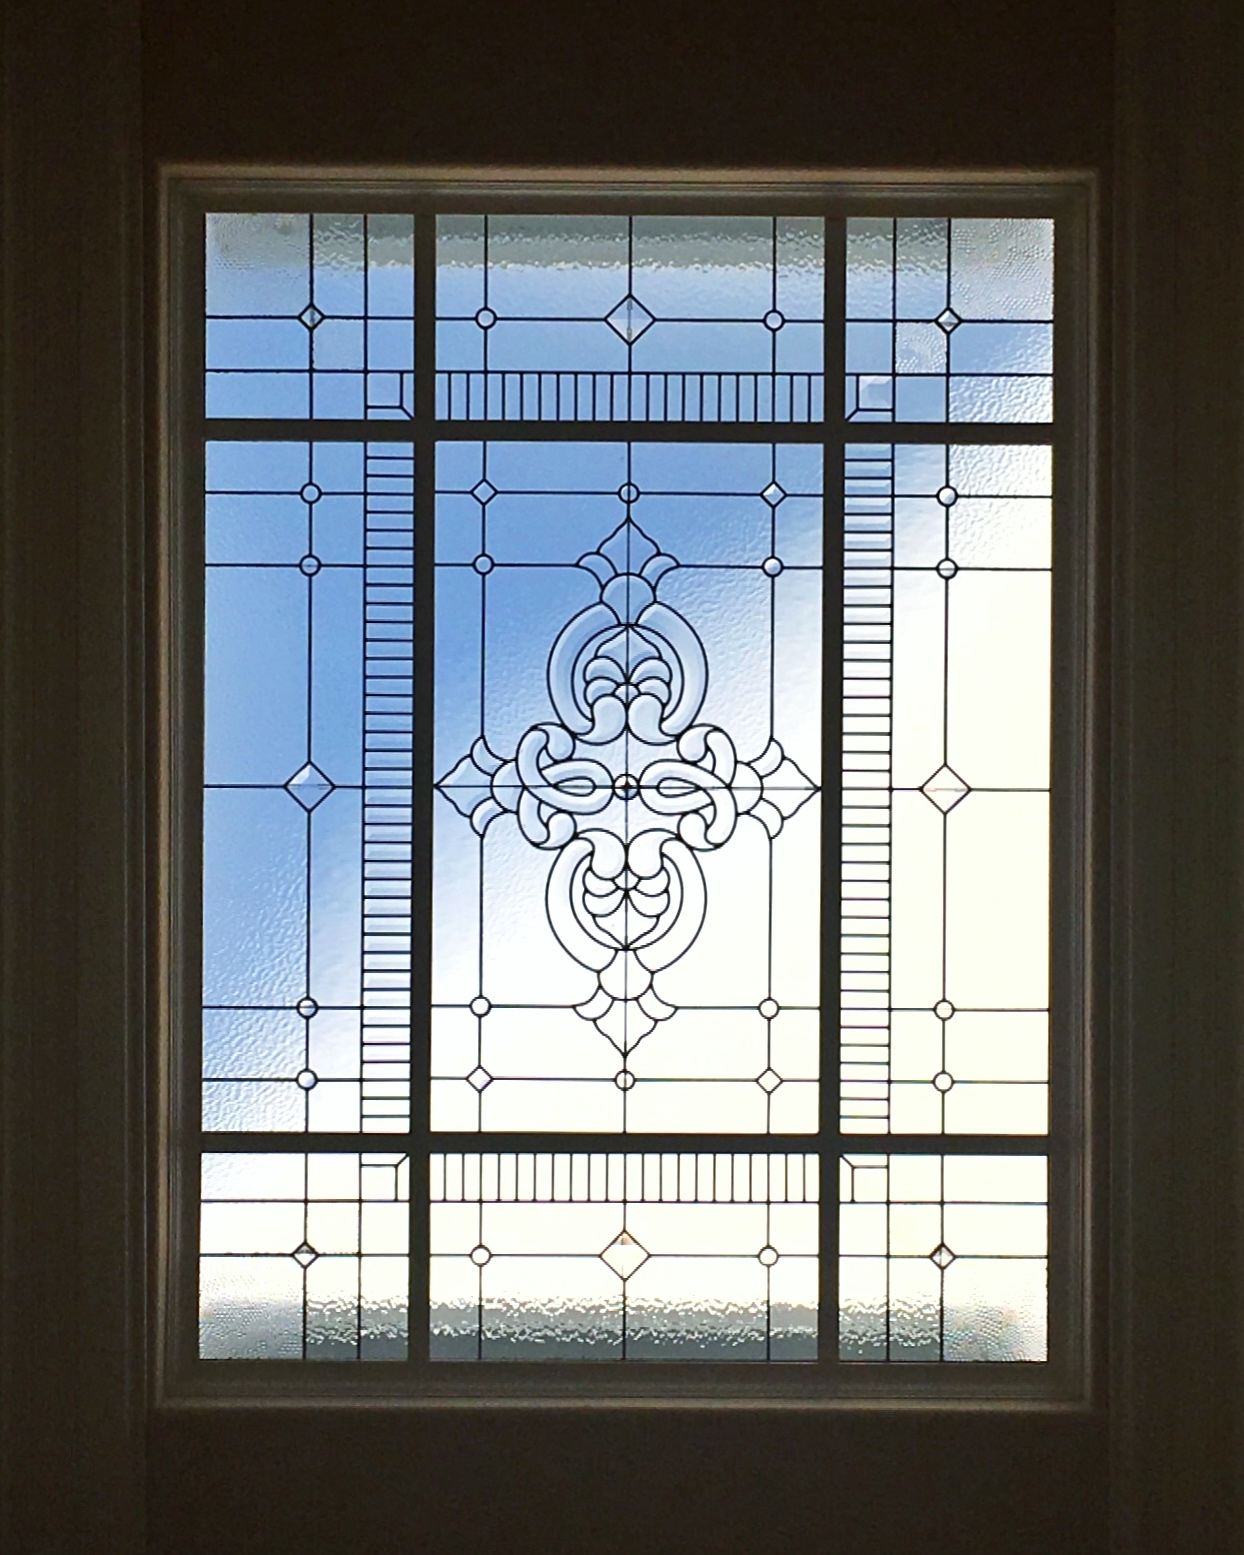 bevel+cluster+intricate+leaded+glass+stained+glass+skylight+clear+textured+glass+palo+alto+atherton+menlo+park+san+jose+san+francisco+bay+area+legacy+glass.jpeg